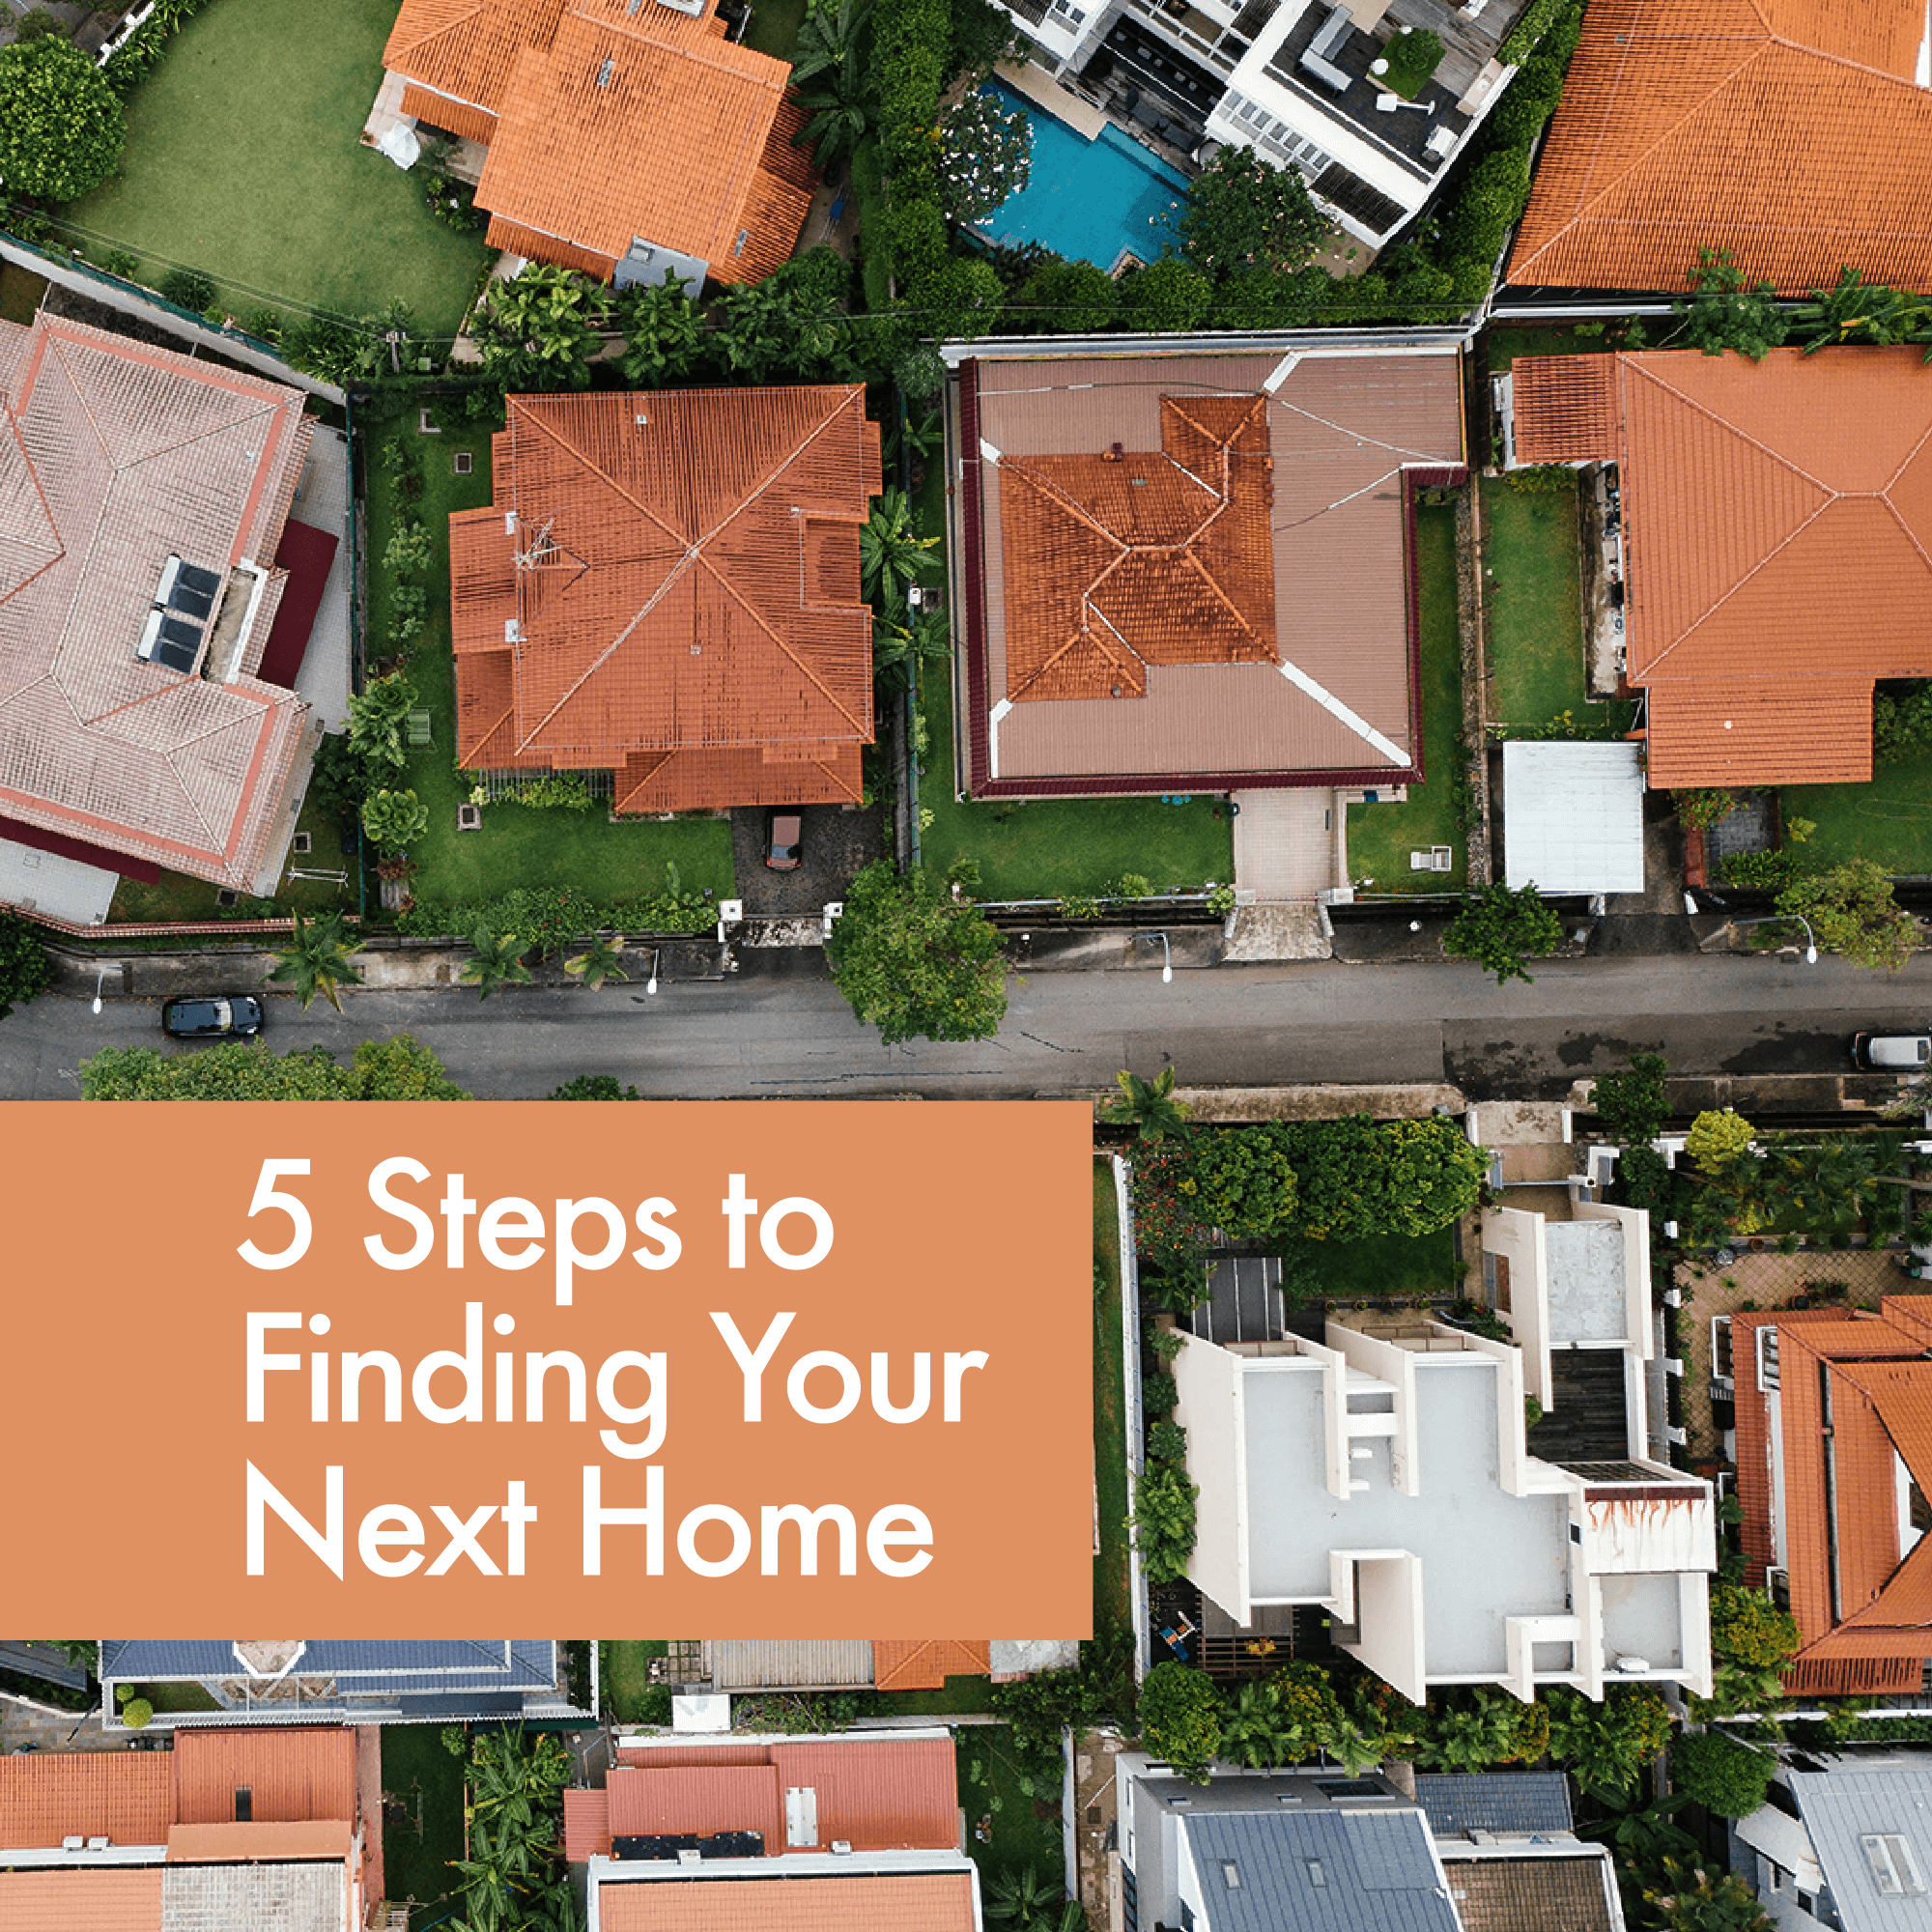 5 Steps to Finding Your Next Home